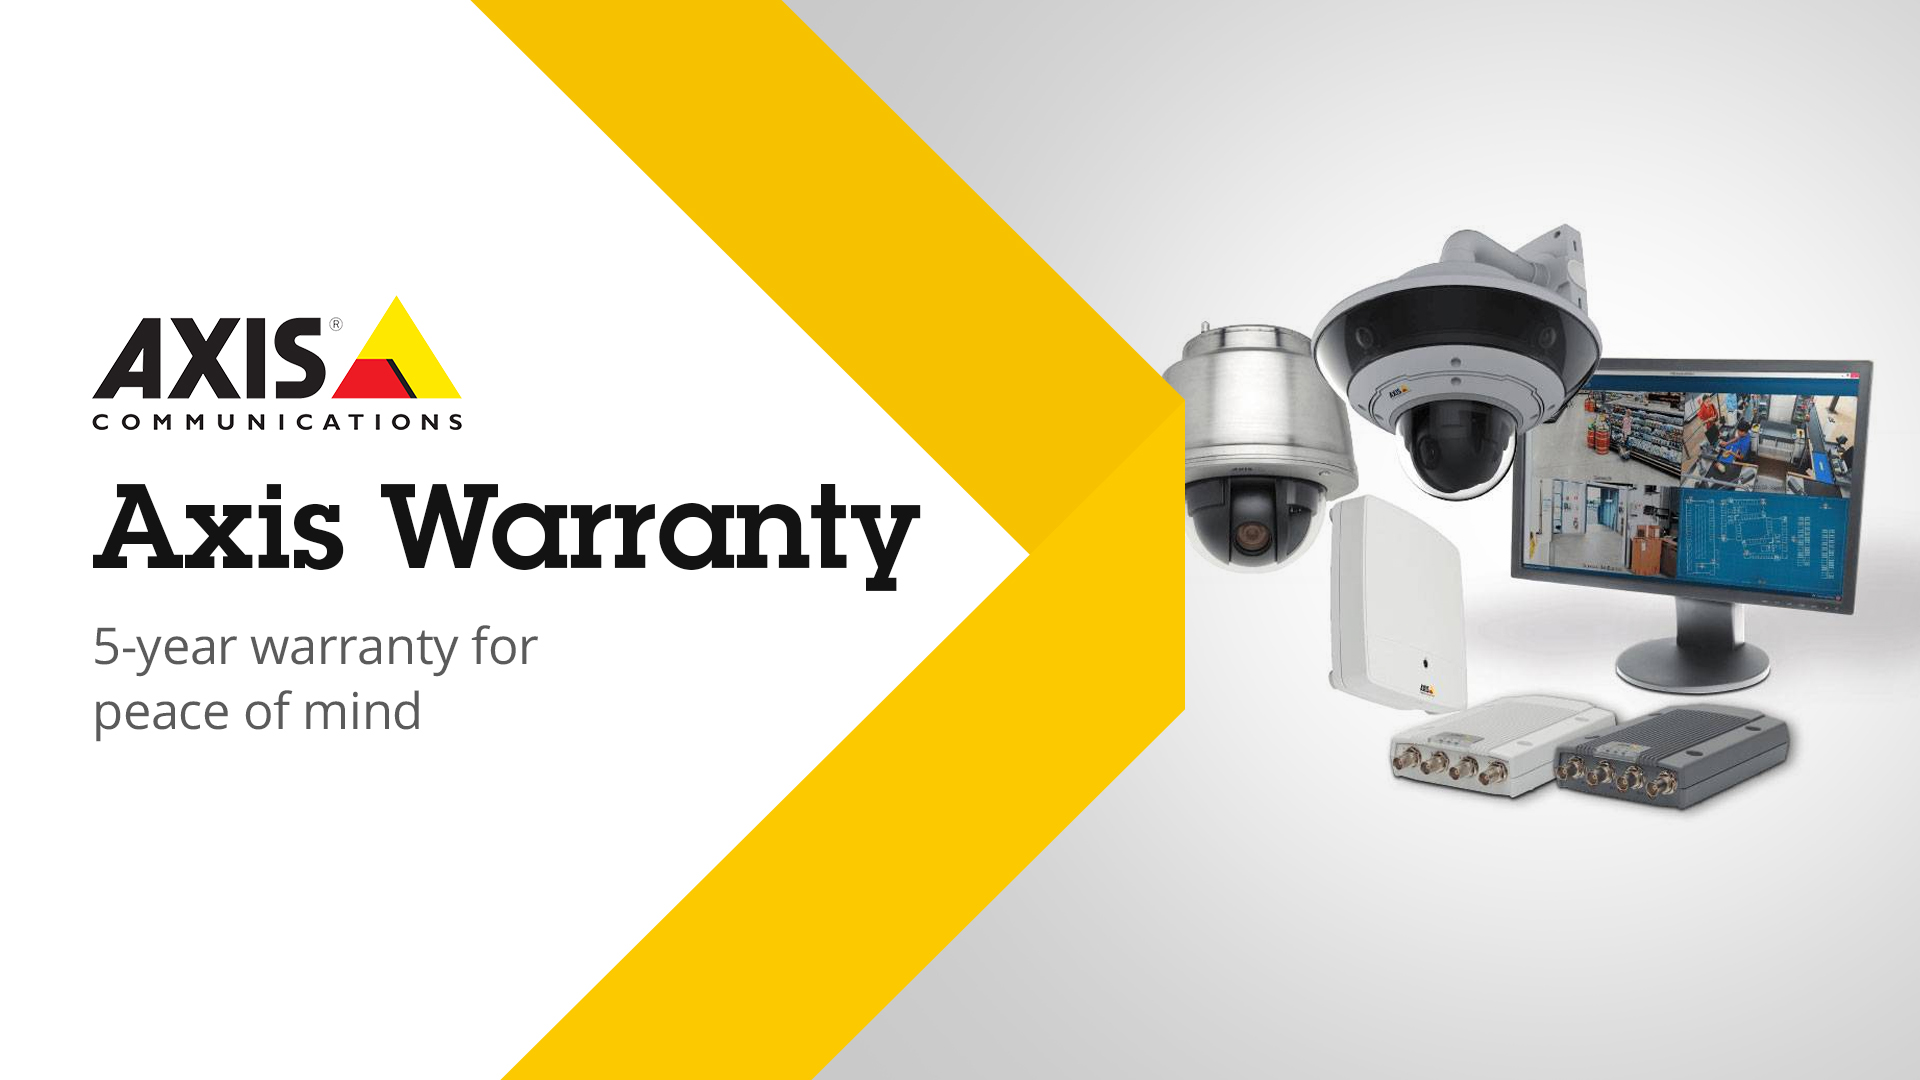 Axis Communications Increases Product Warranty to 5 Years